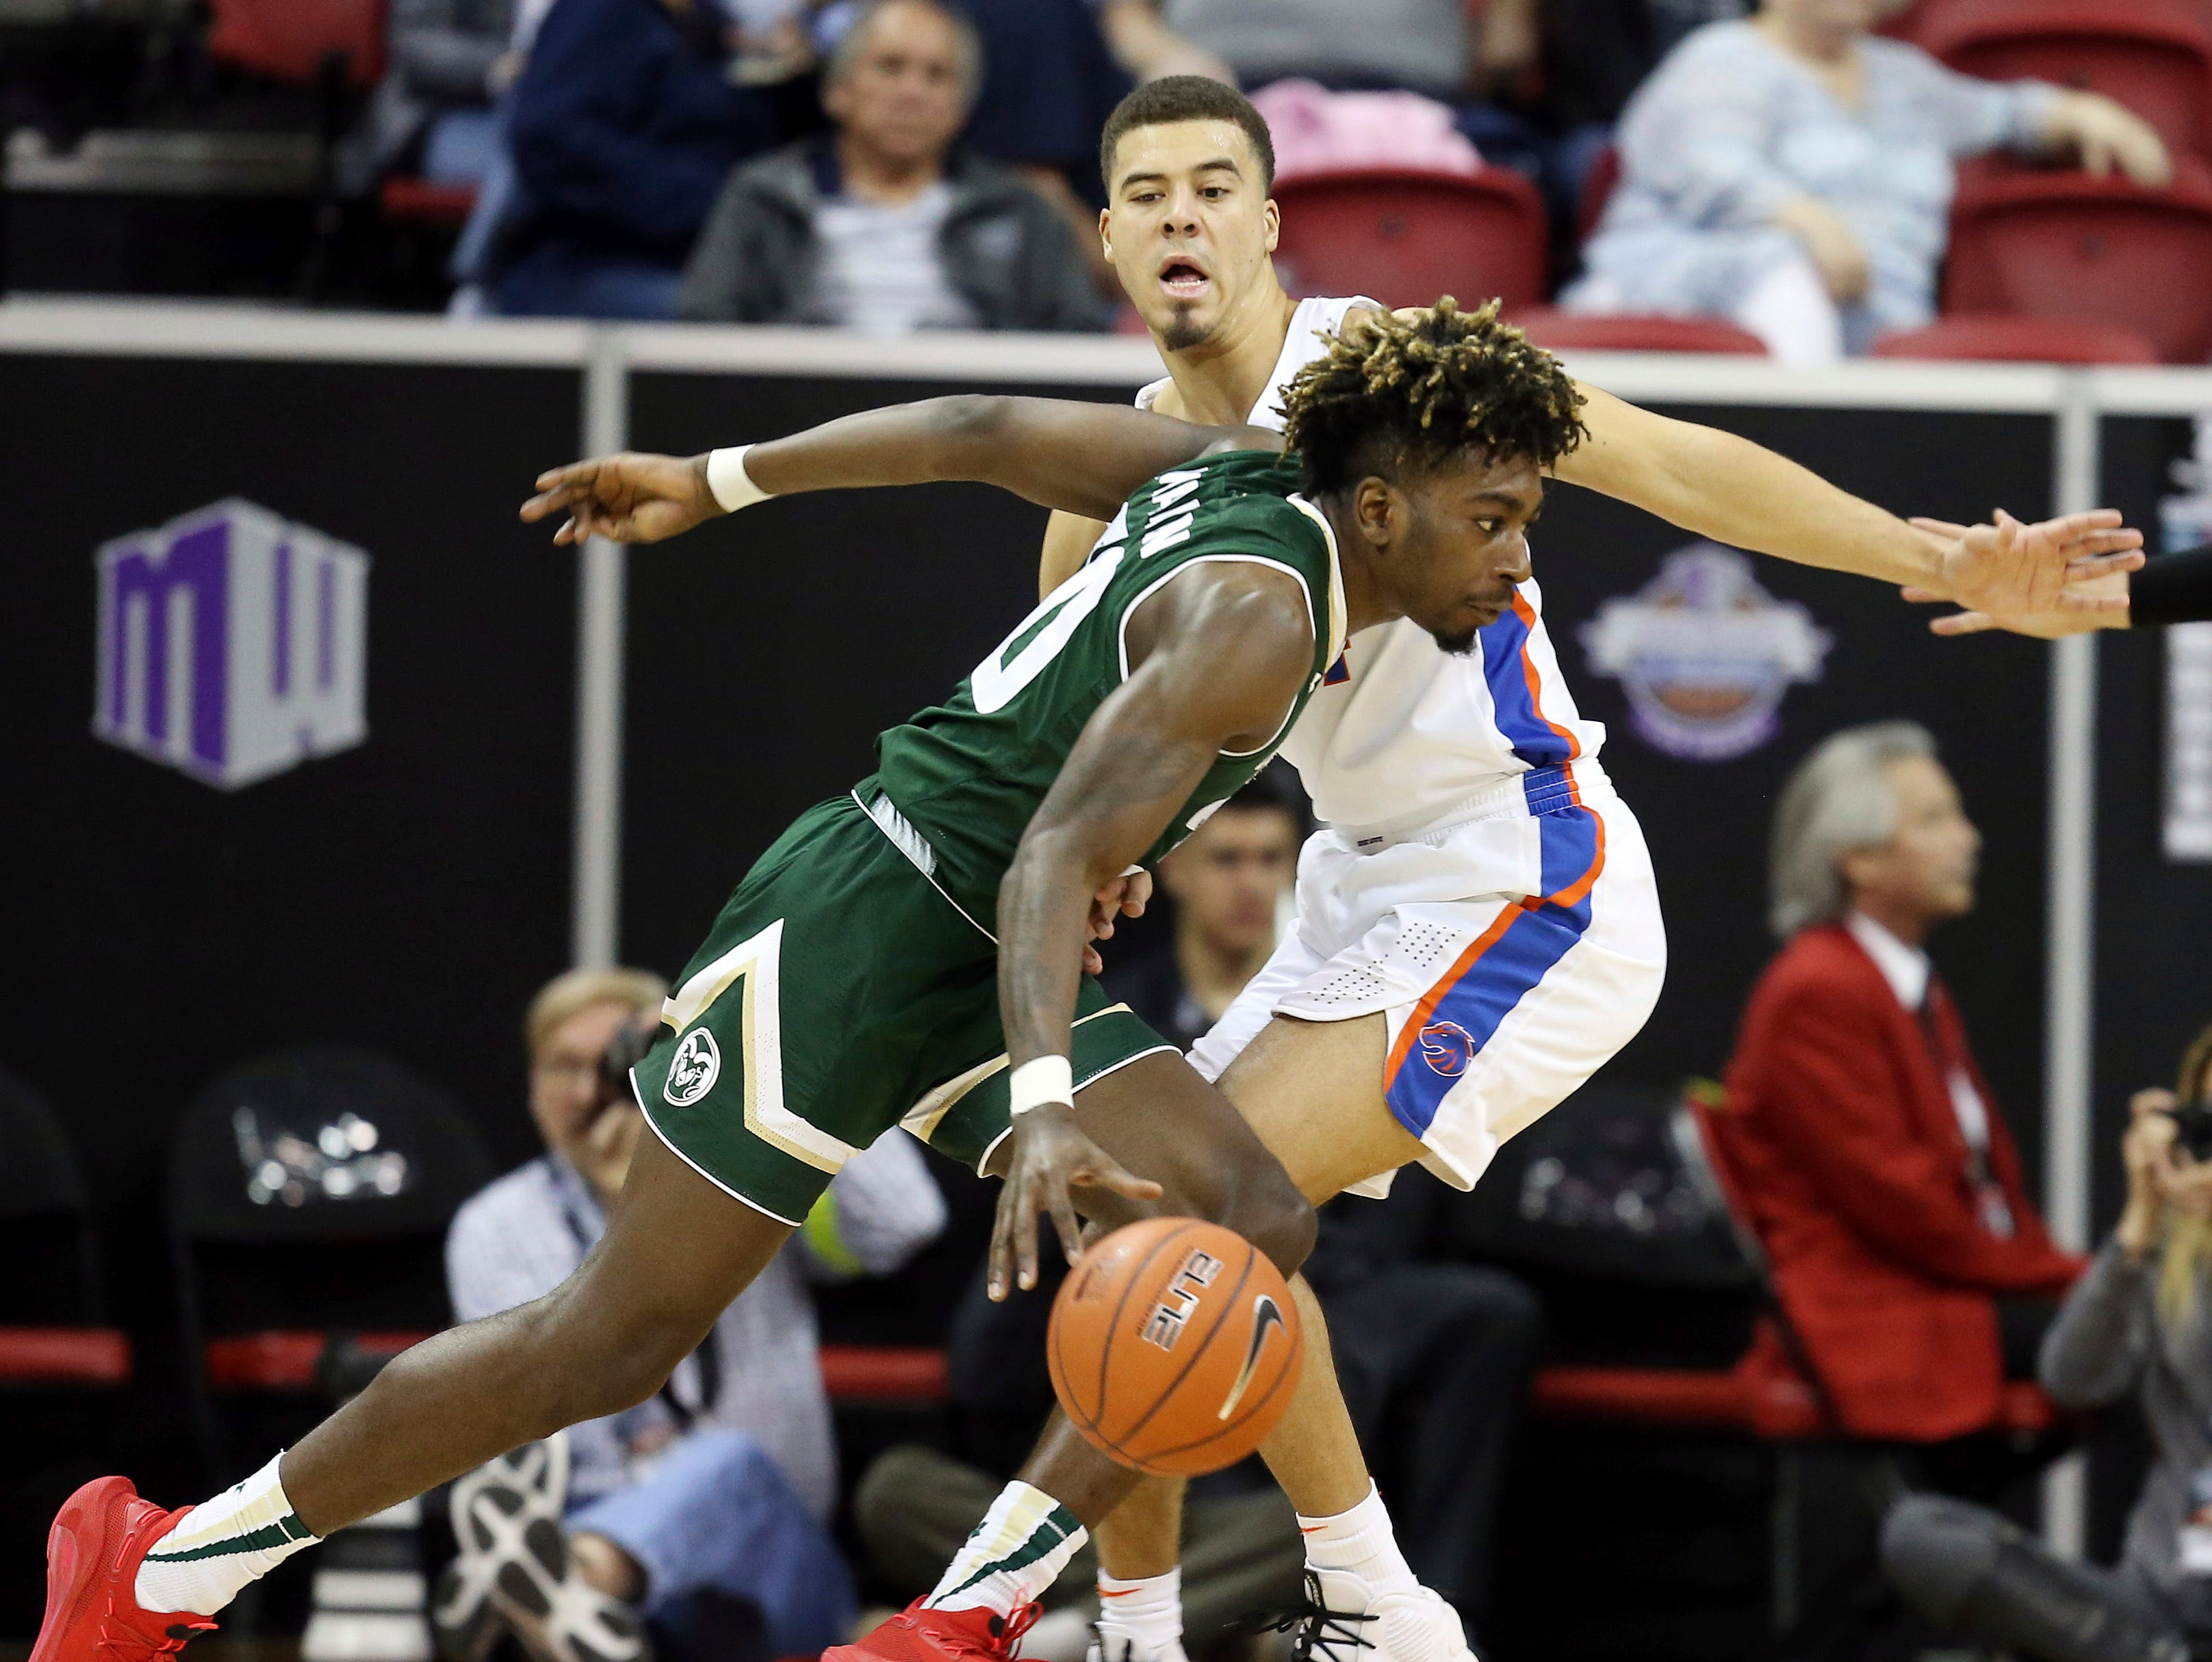 Colorado State's Kris Martin drives defended by Boise State's Alex Hobbs during the first half of an NCAA college basketball game in the Mountain West Conference tournament, Wednesday, March 13, 2019, in Las Vegas.